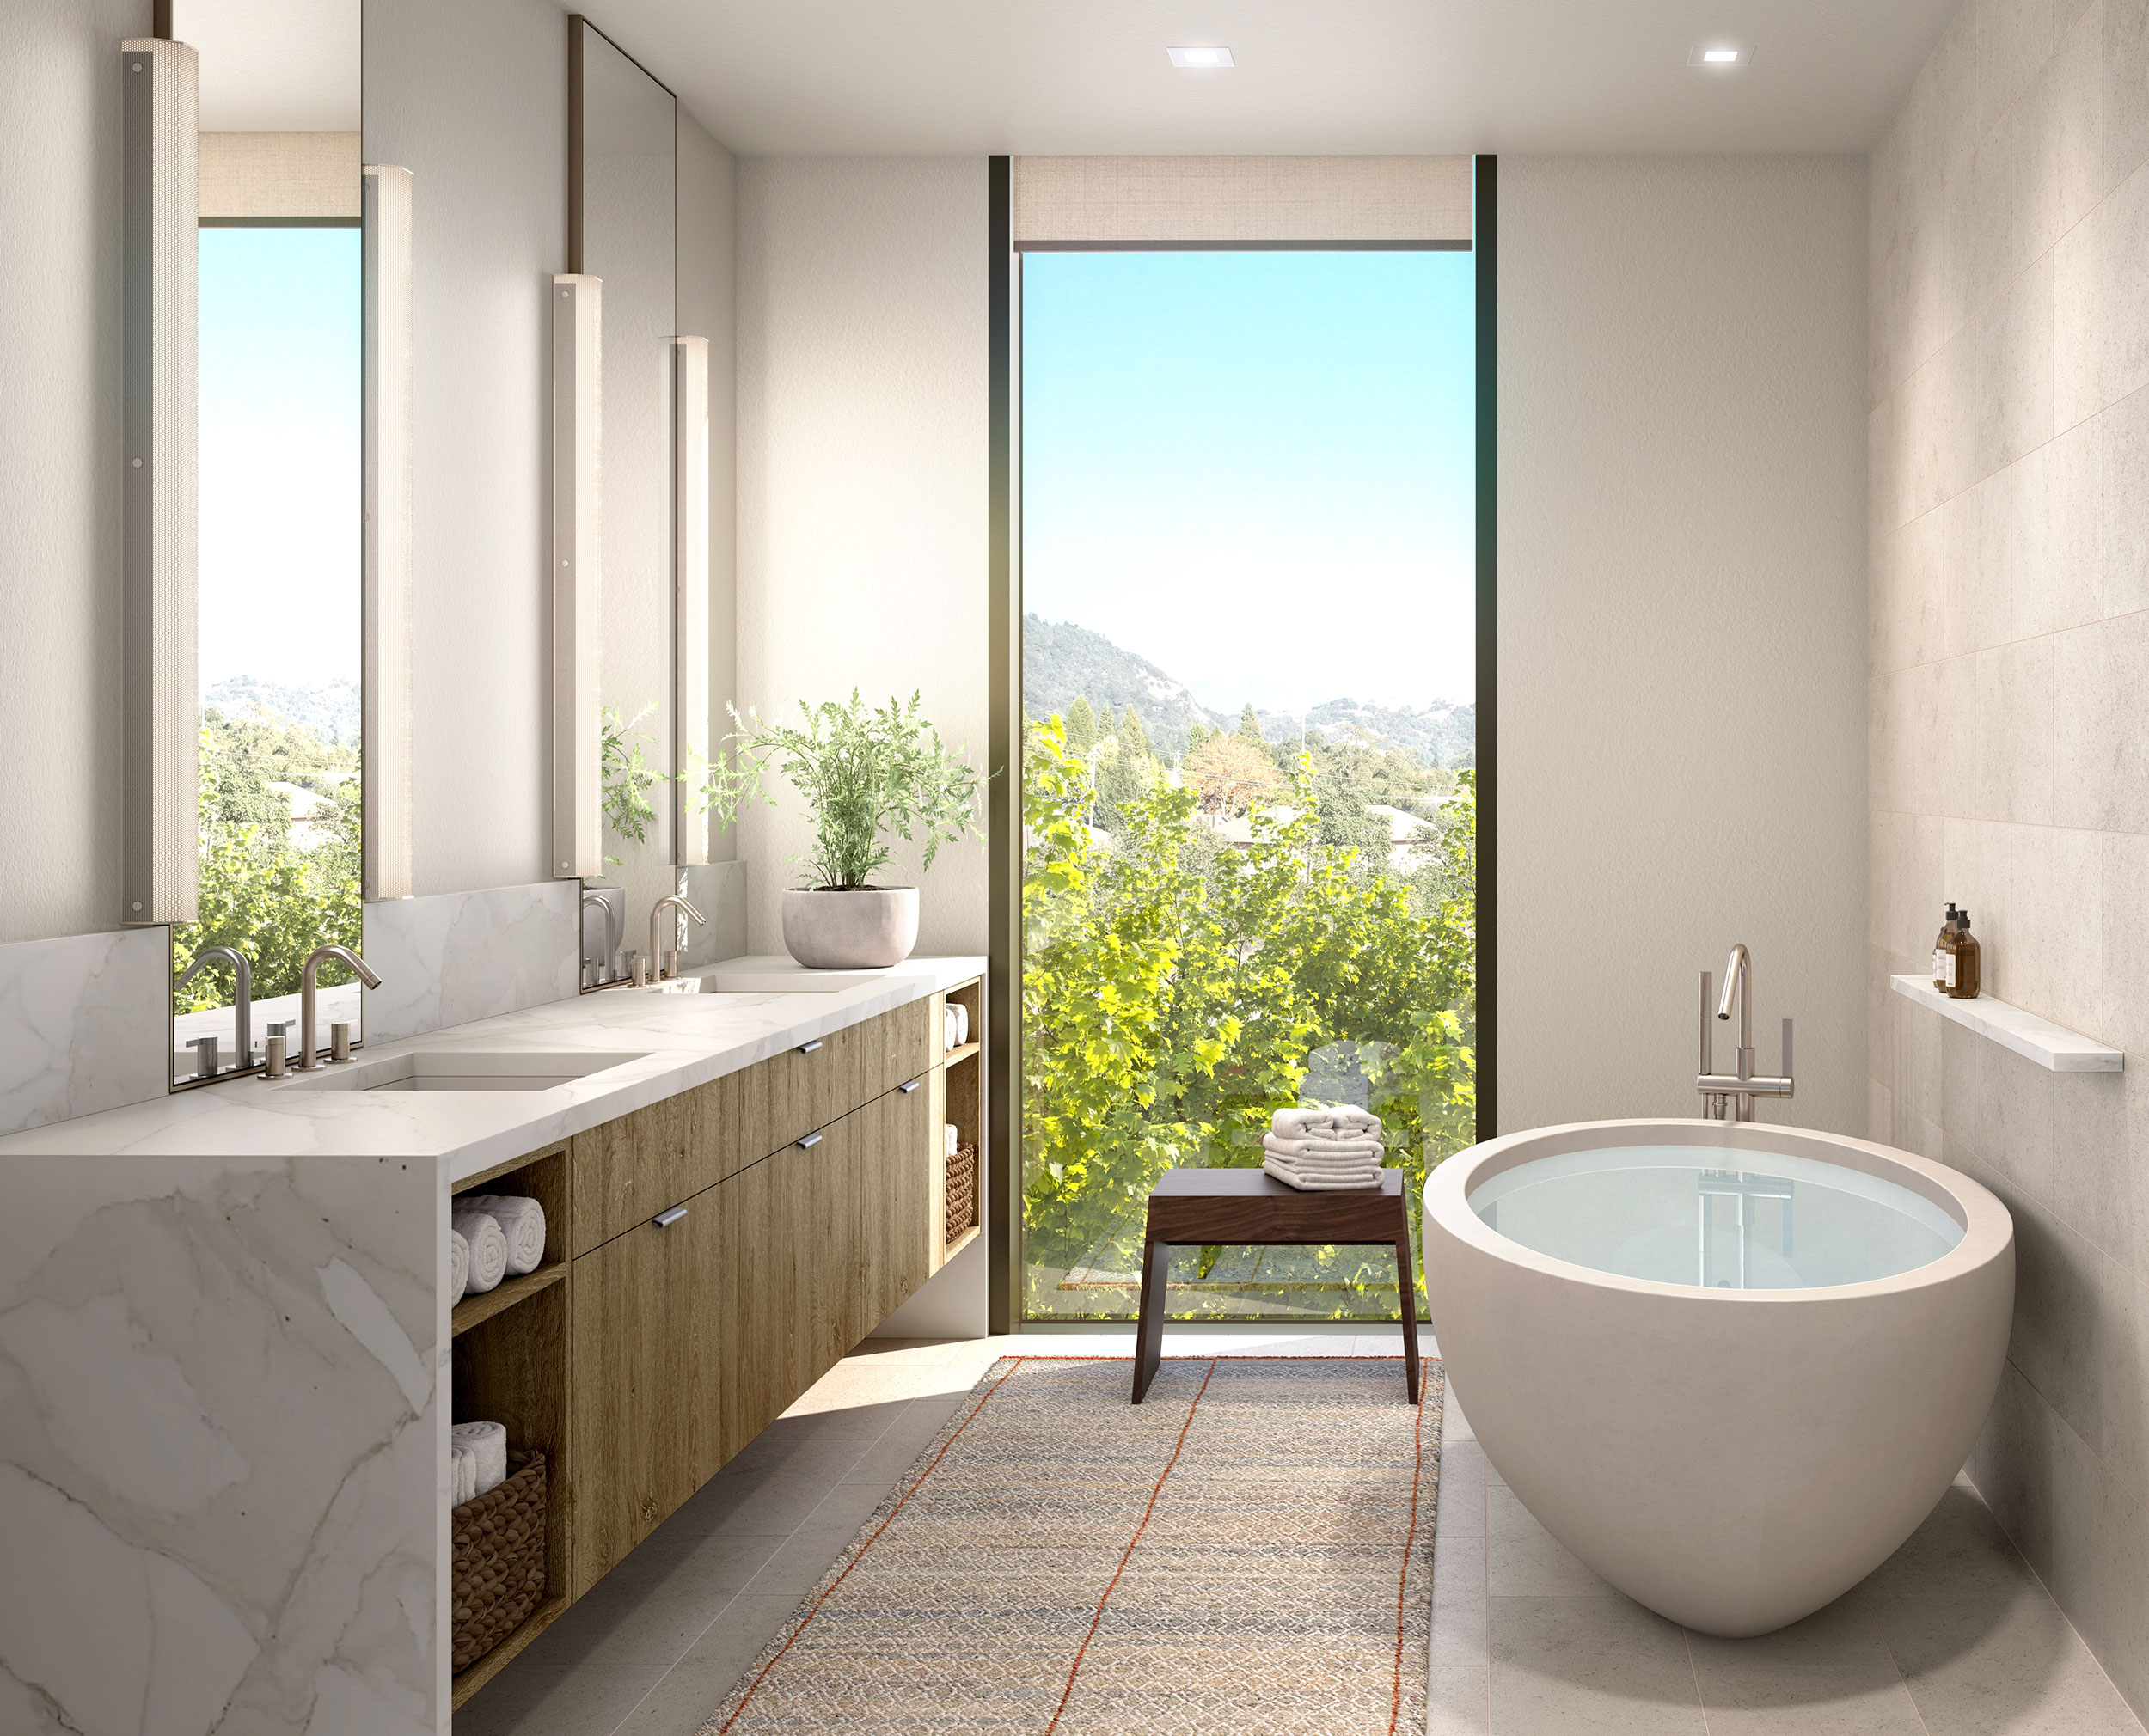 Master bathrooms feature slab walls and marble countertops, a walk-in rain shower, and deep soaking tubs.